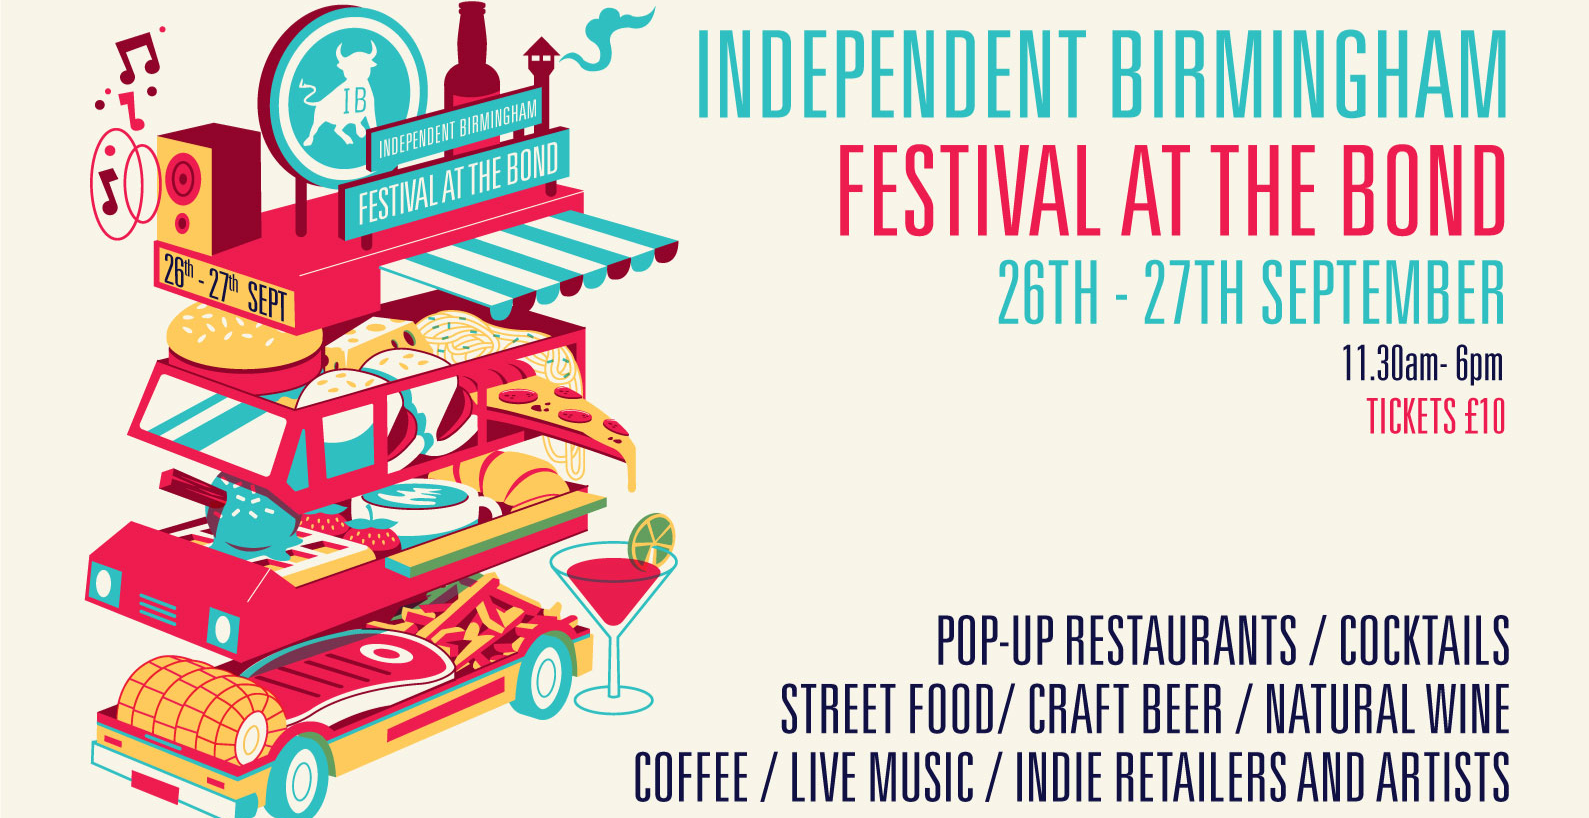 The Last Ever Independent Birmingham Festival At The Bond